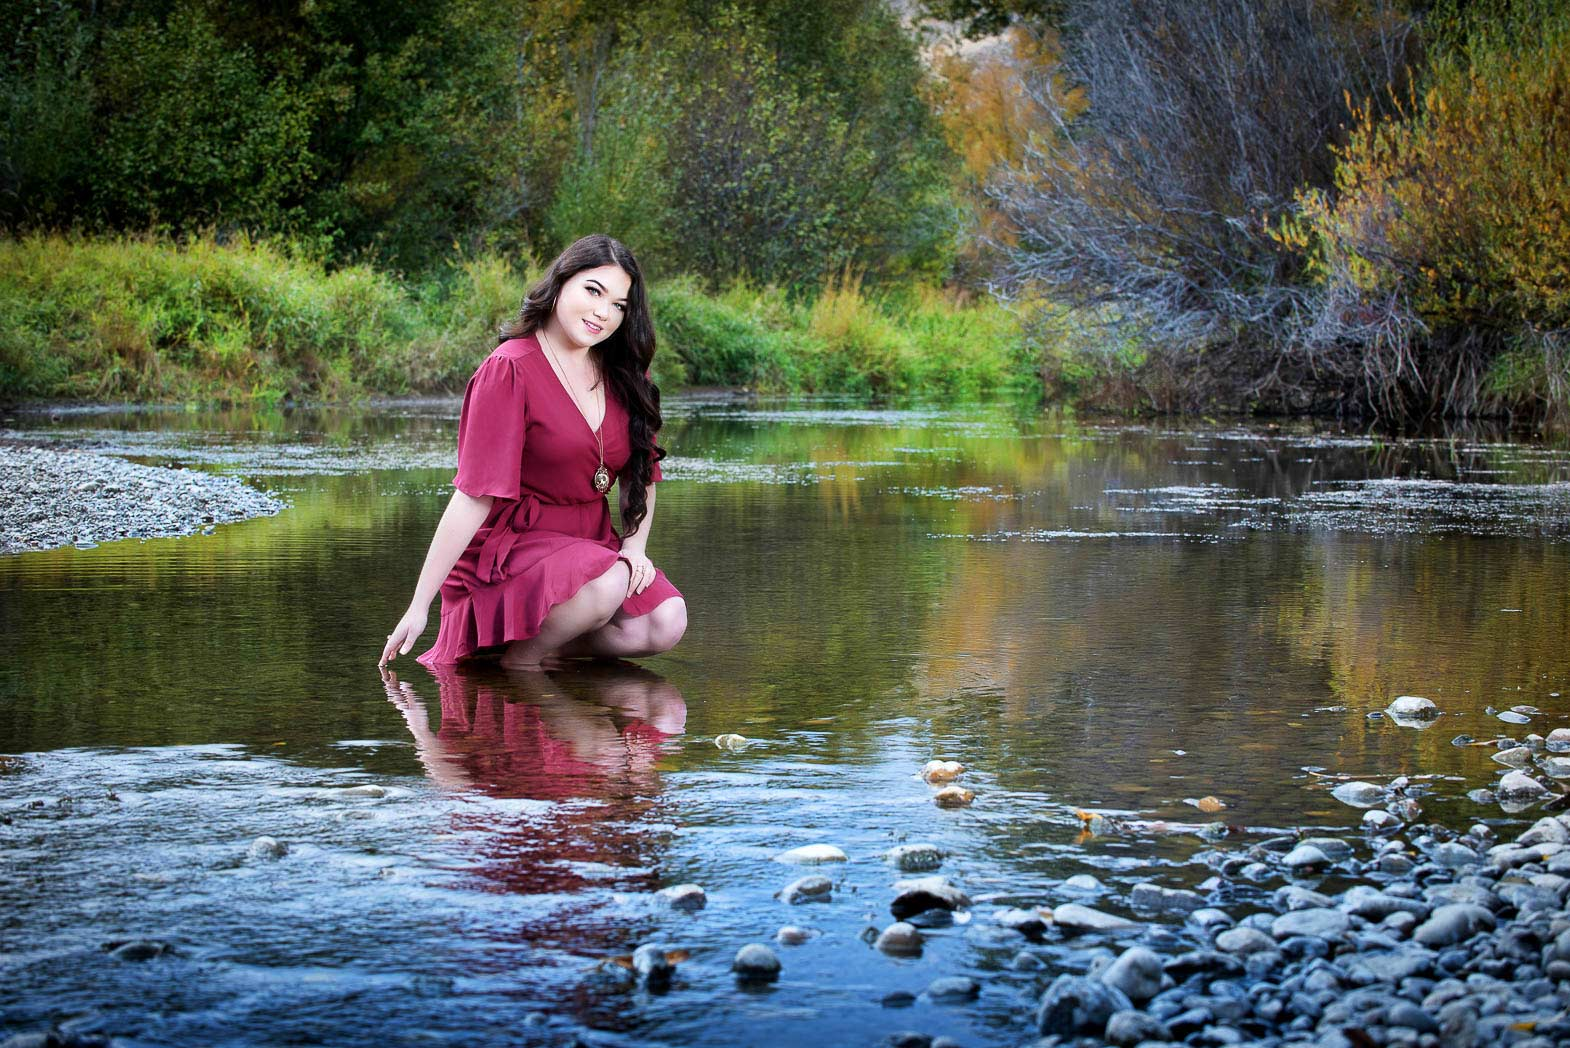 scenic senior picture of girl in red dress kneeling in shallow river with trees reflected in water